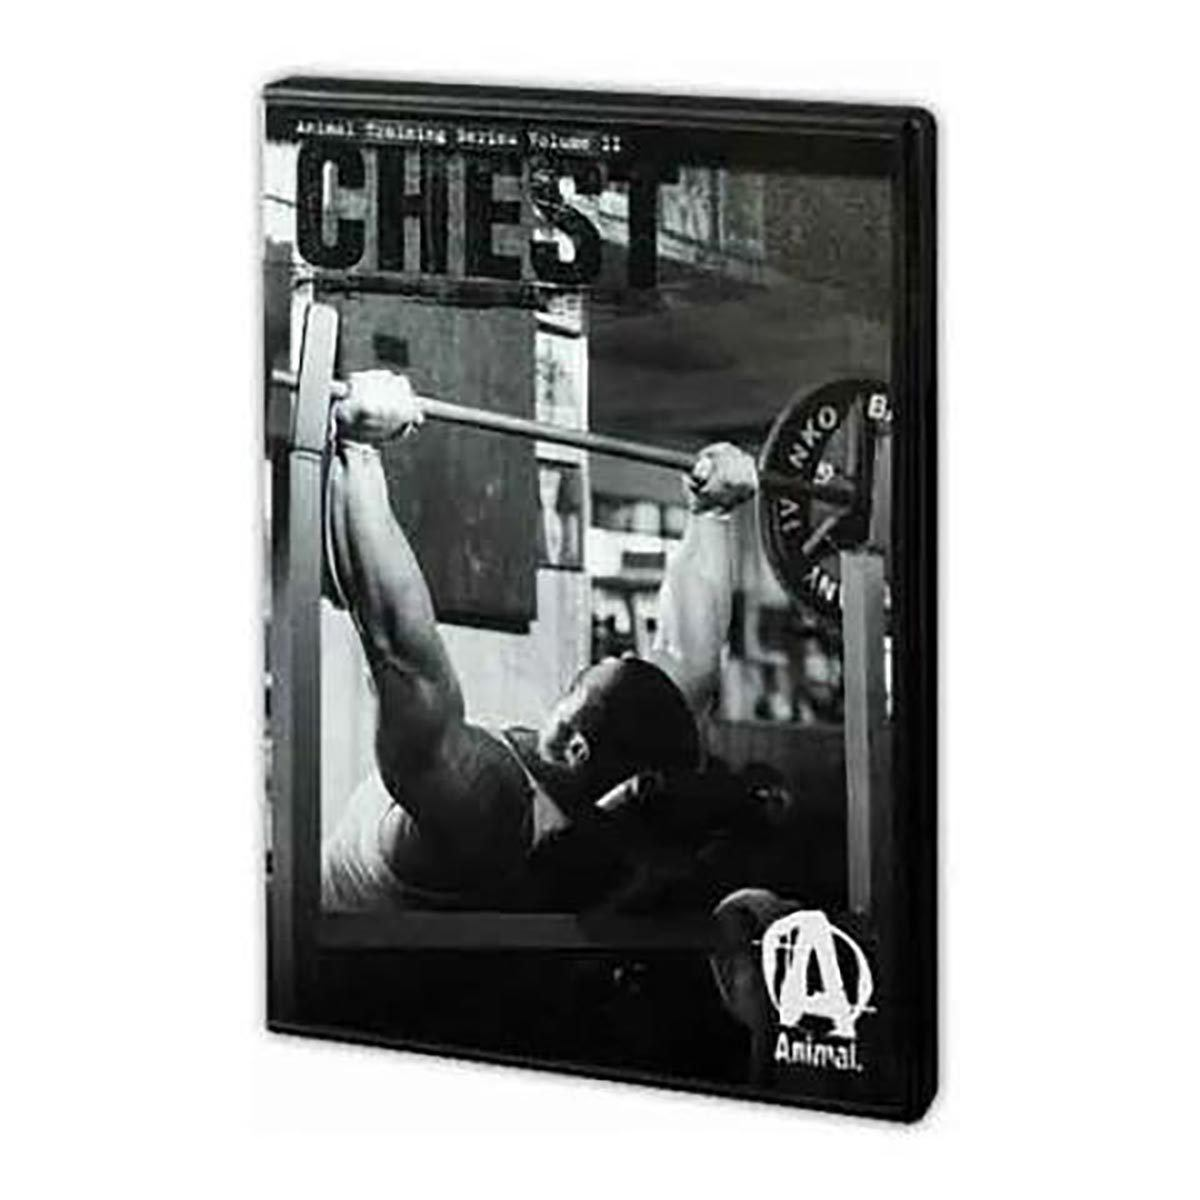 Universal Animal Chest Training DVD Fitness Accessories and Apparel Universal  (1058063941675)